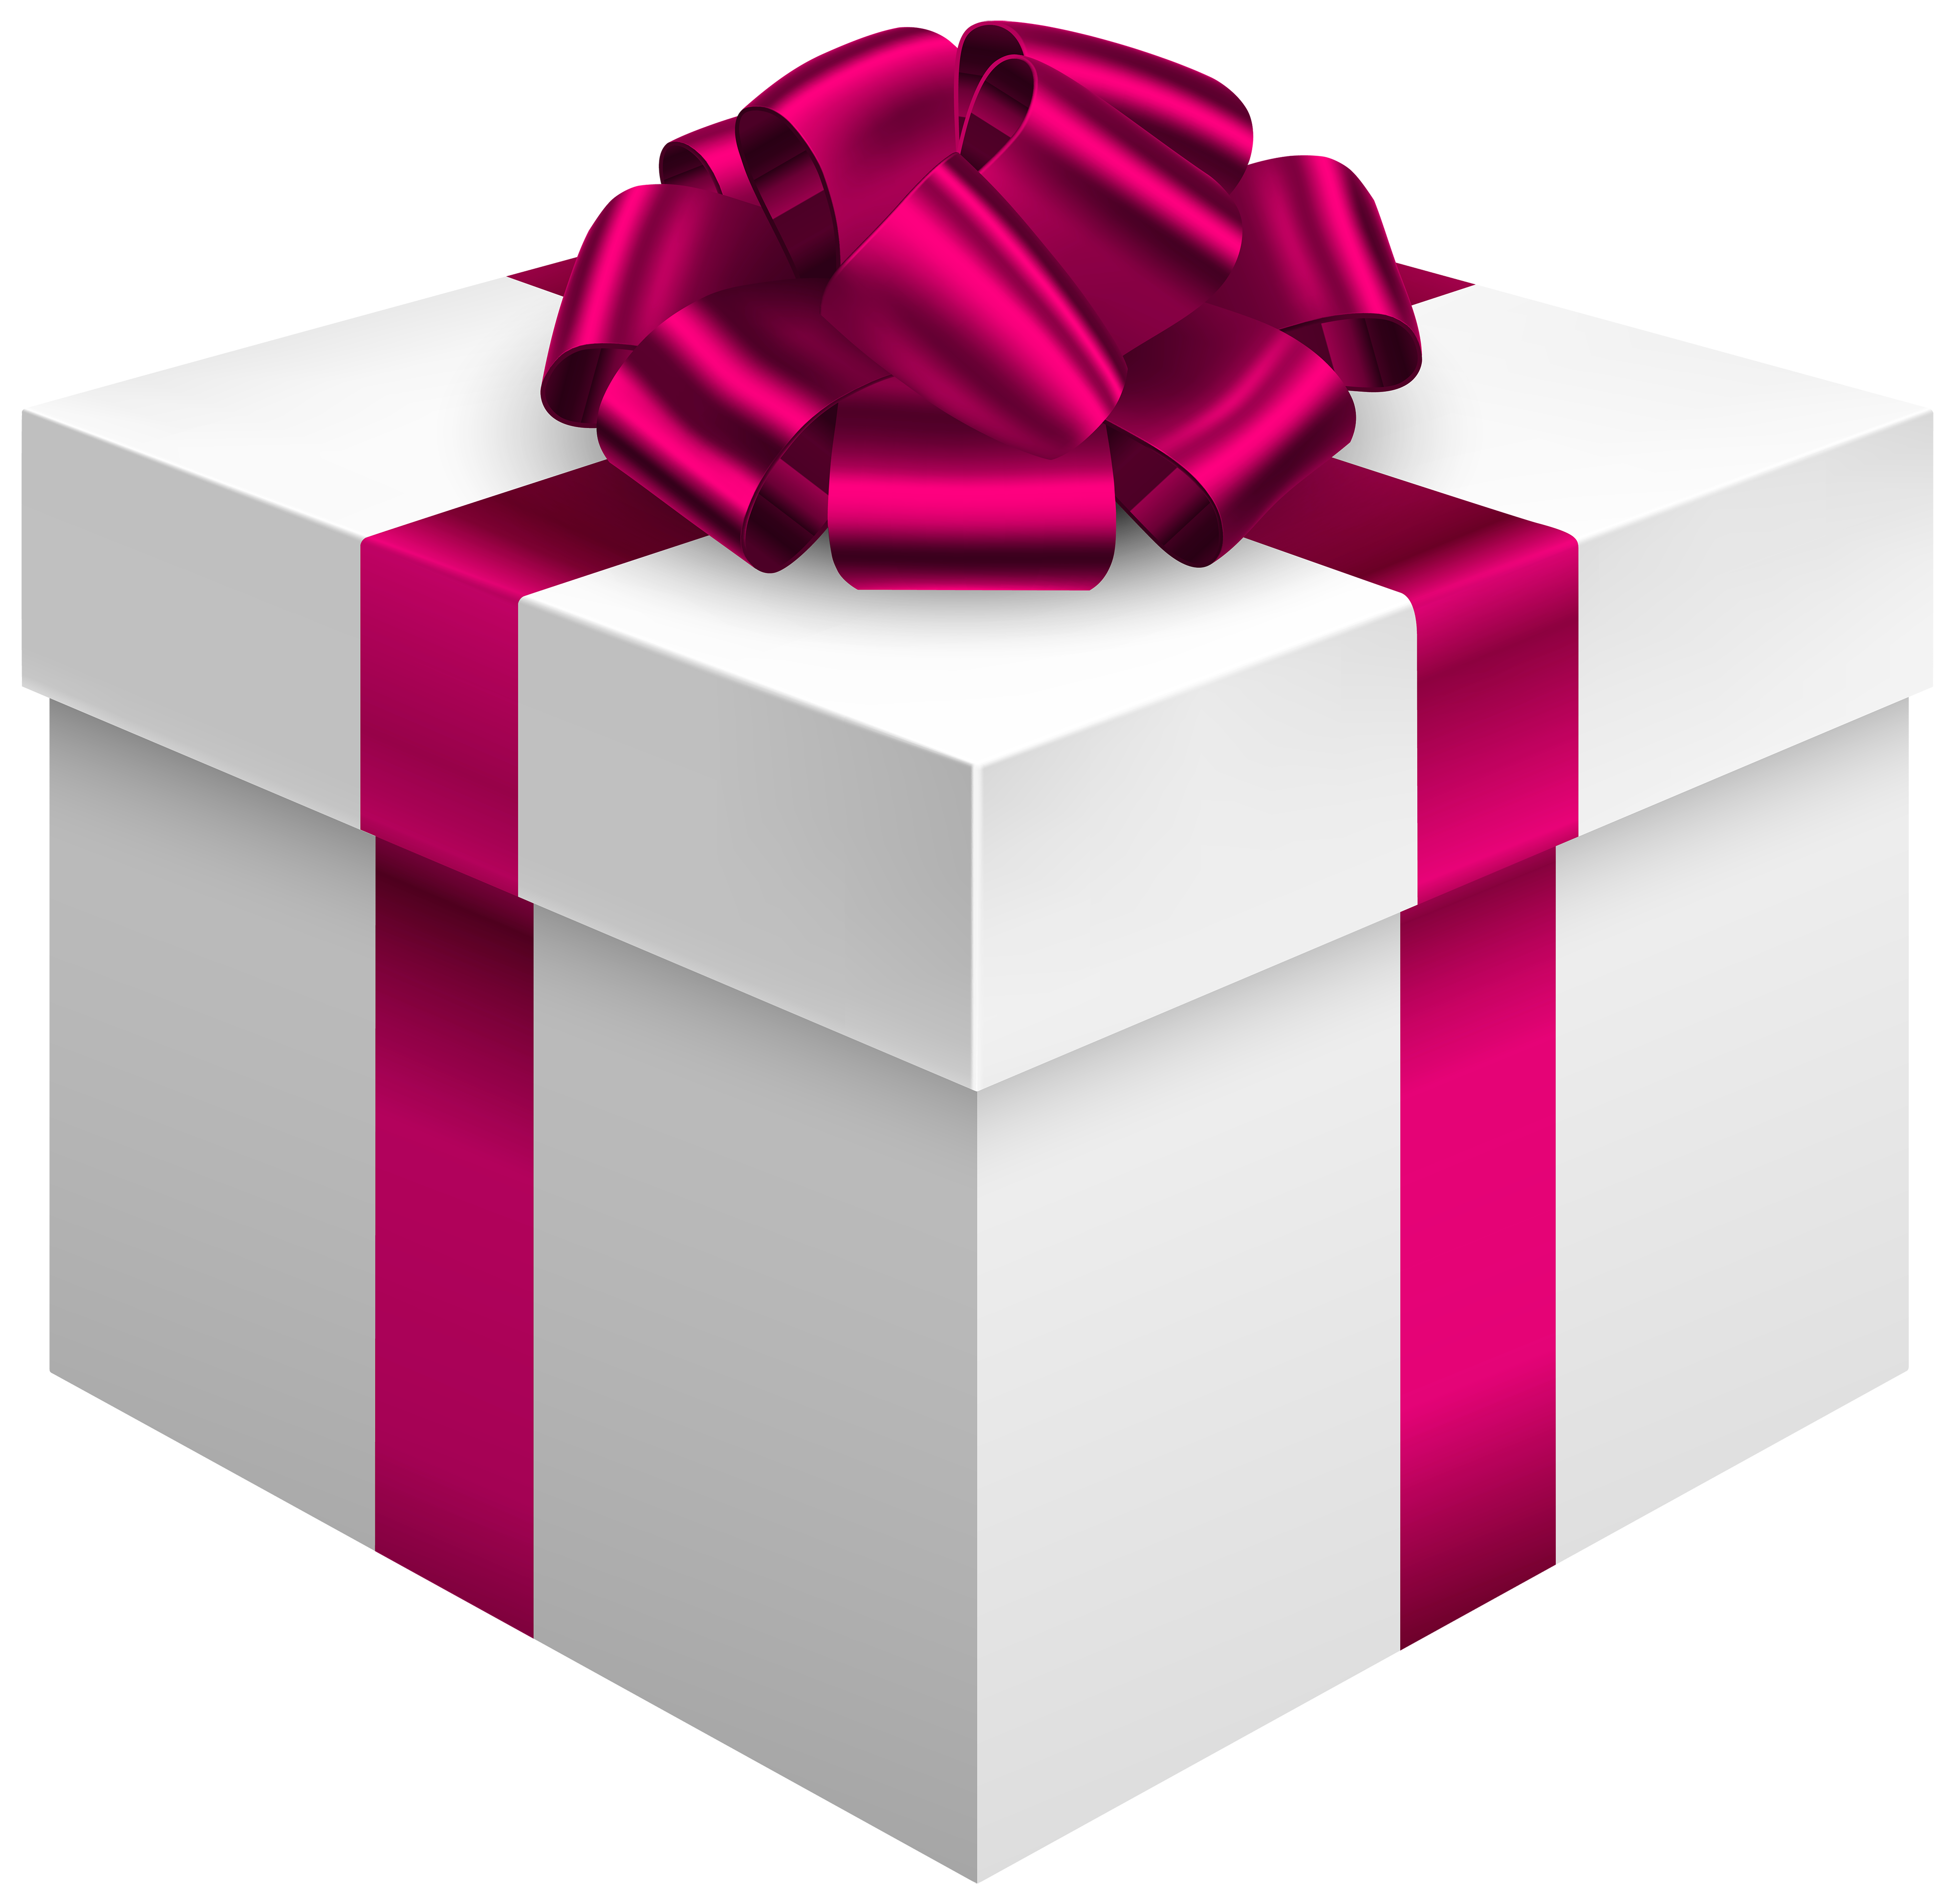 gift clipart at getdrawings com free for personal use gift clipart rh getdrawings com gift box clipart png gift box clipart png